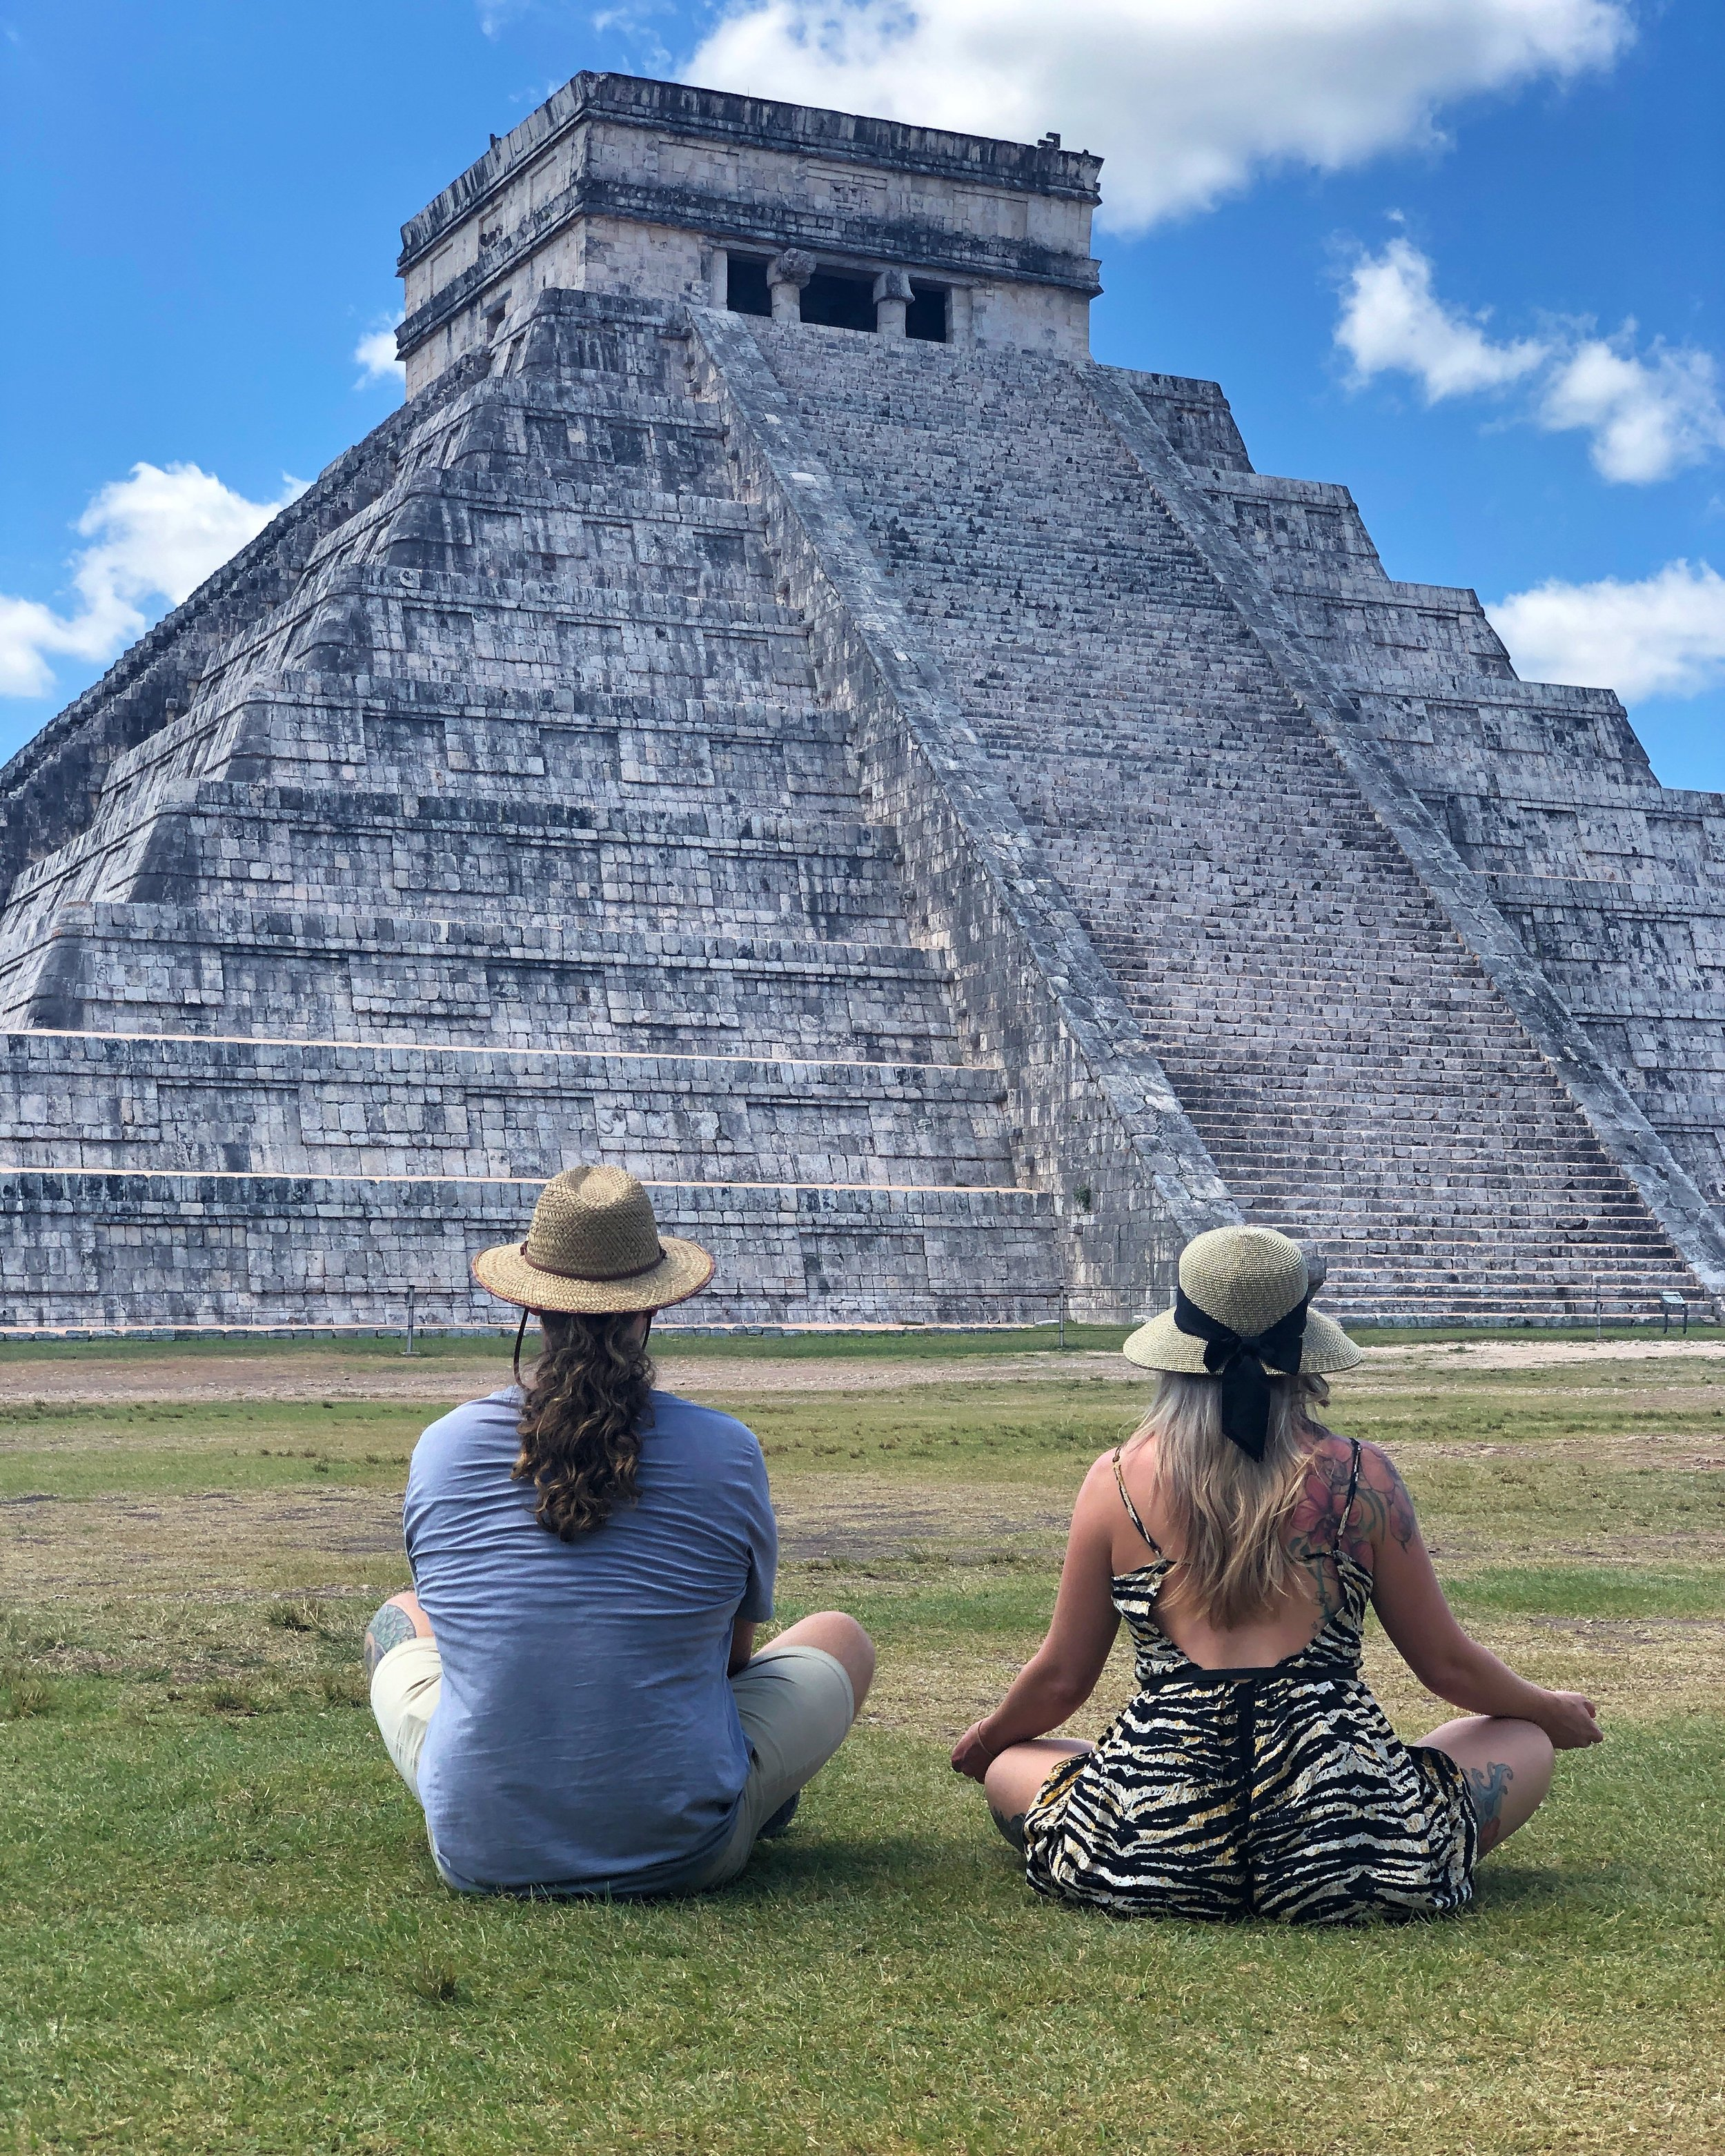 Brit and Jonah admiring the Mayan Temple, Chichen Itza, in the Yucatán Peninsula.